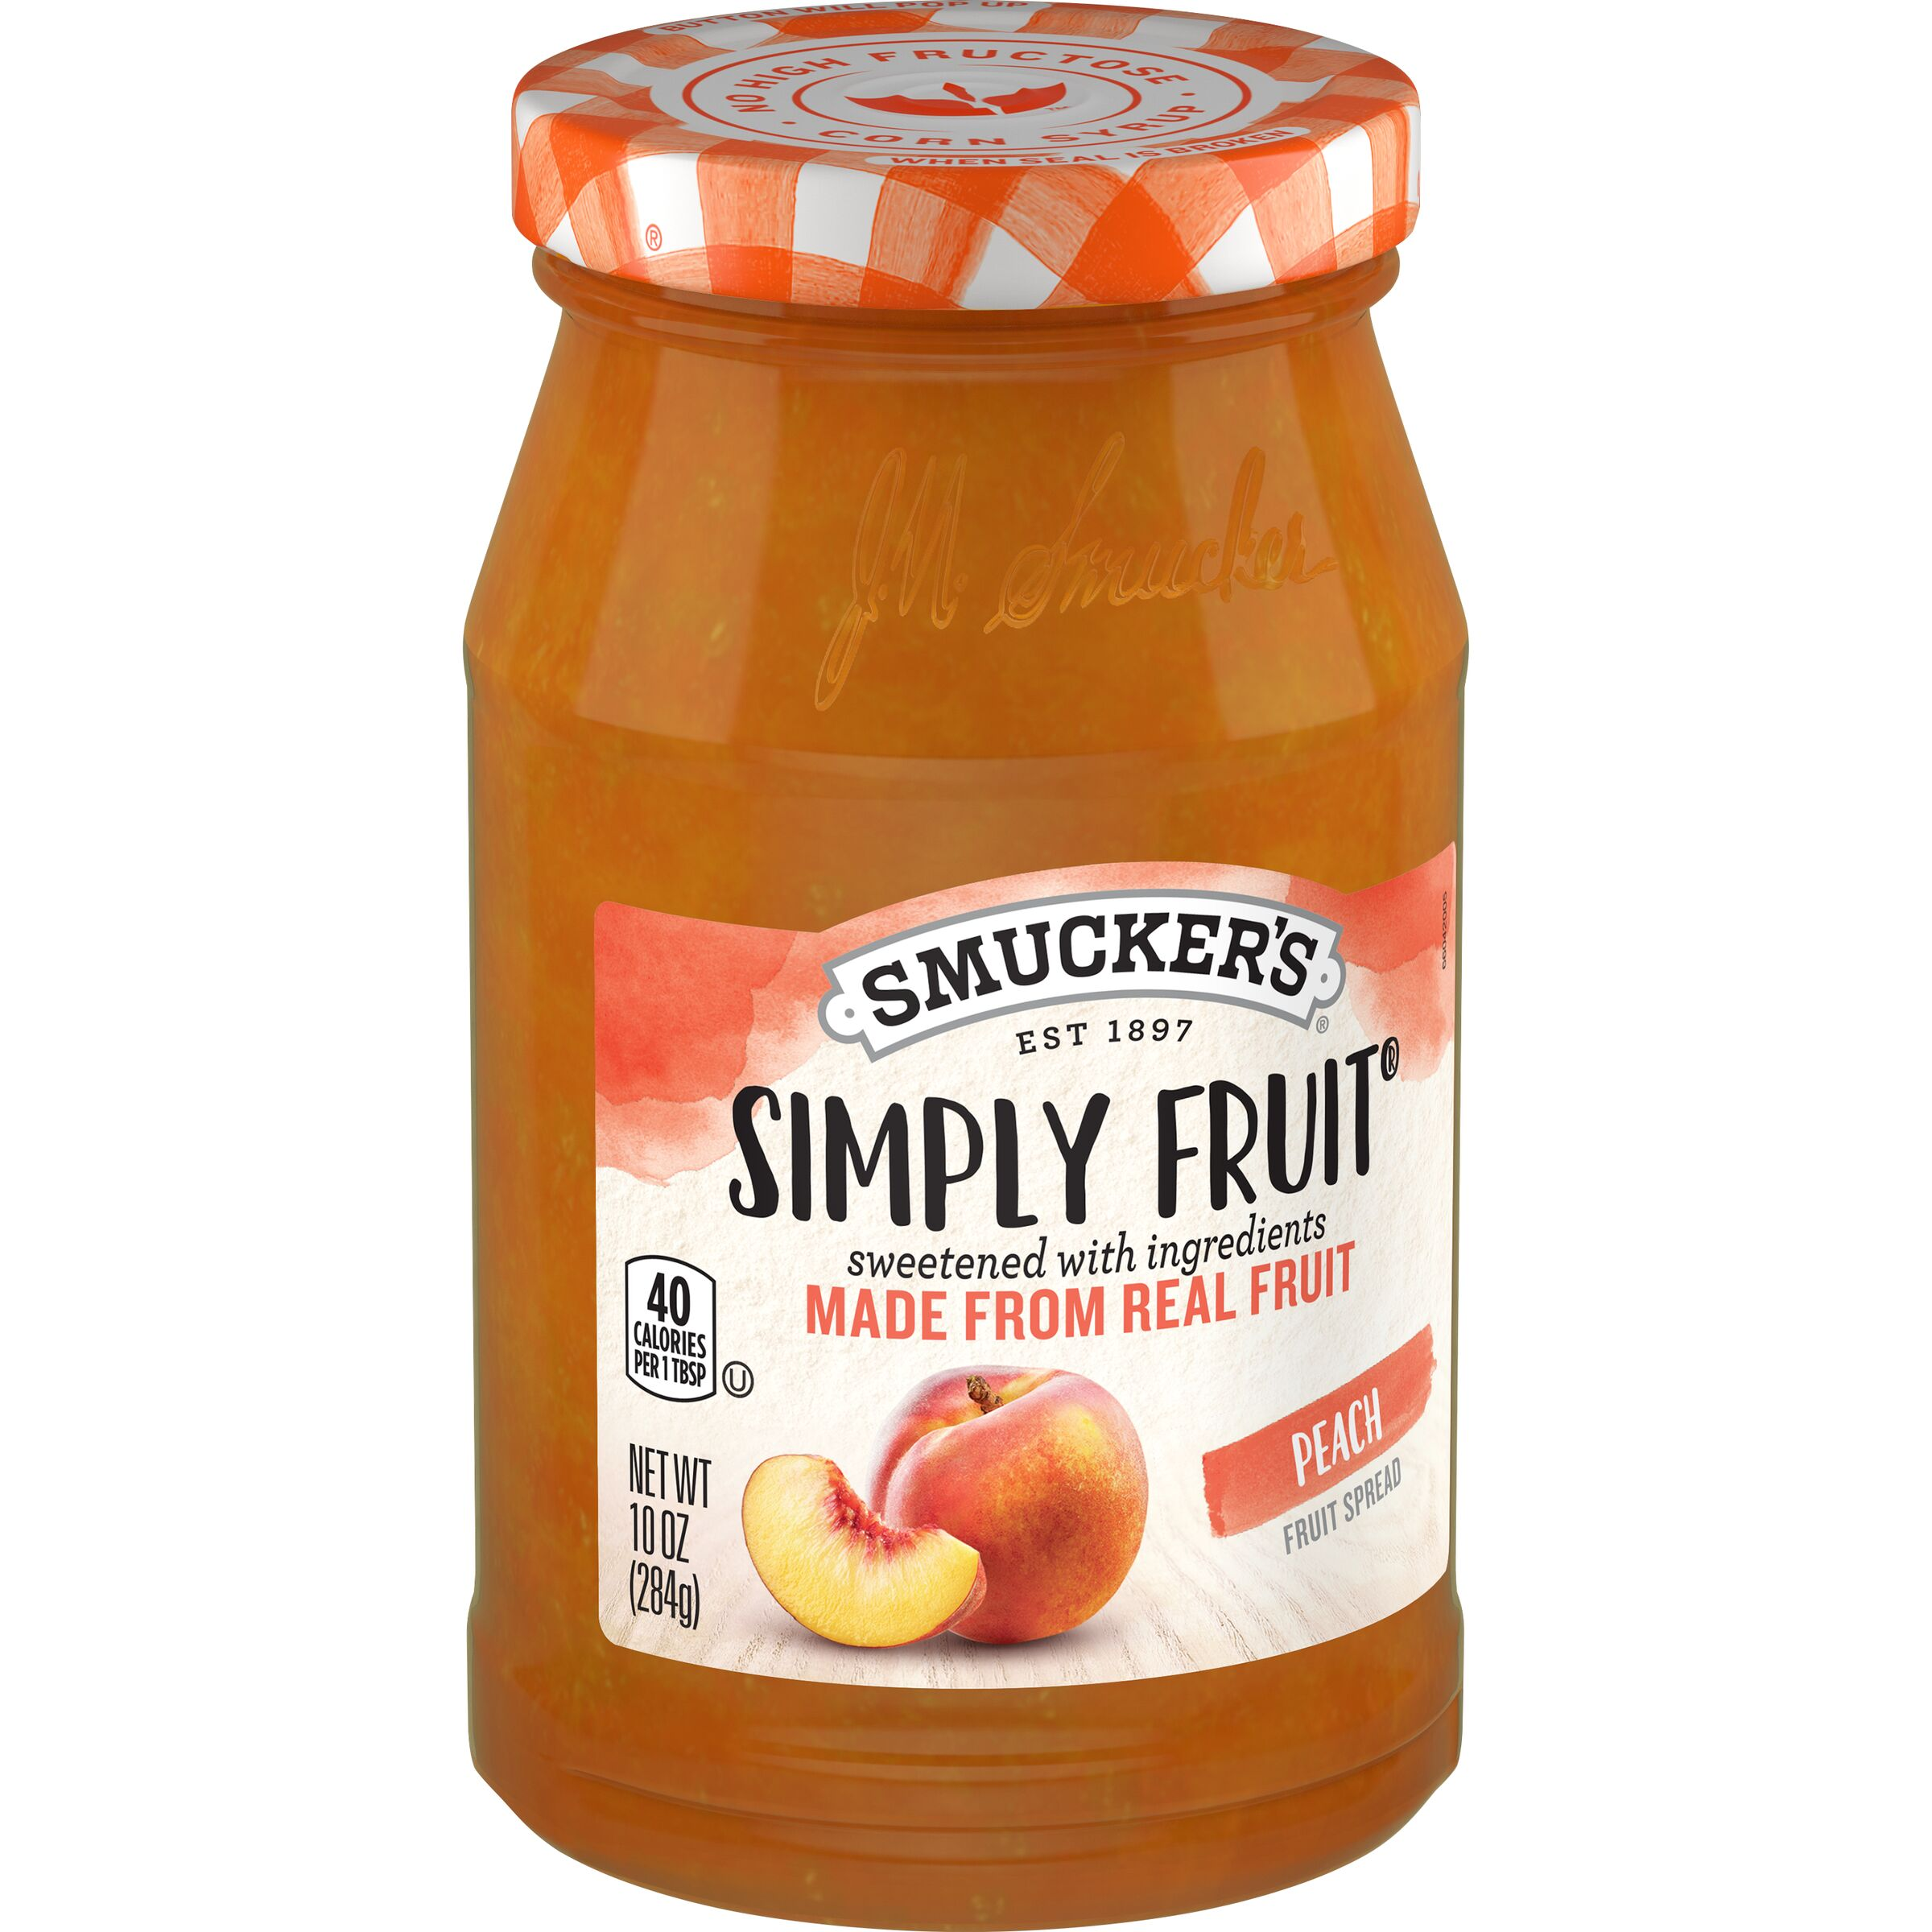 Smucker's Simply Fruit Peach Spreadable Fruit